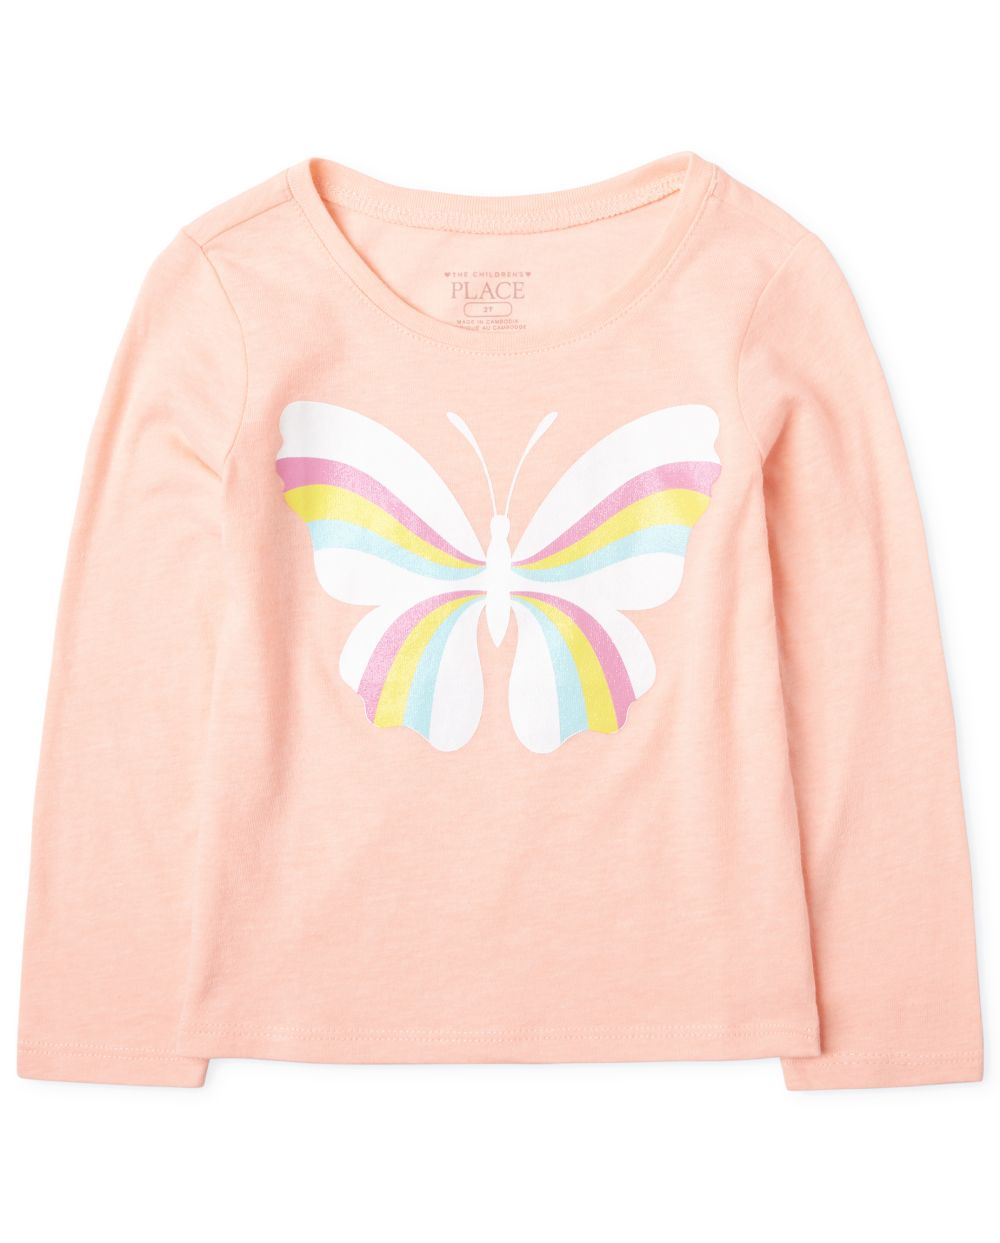 Baby And Toddler Girls Rainbow Butterfly Graphic Tee